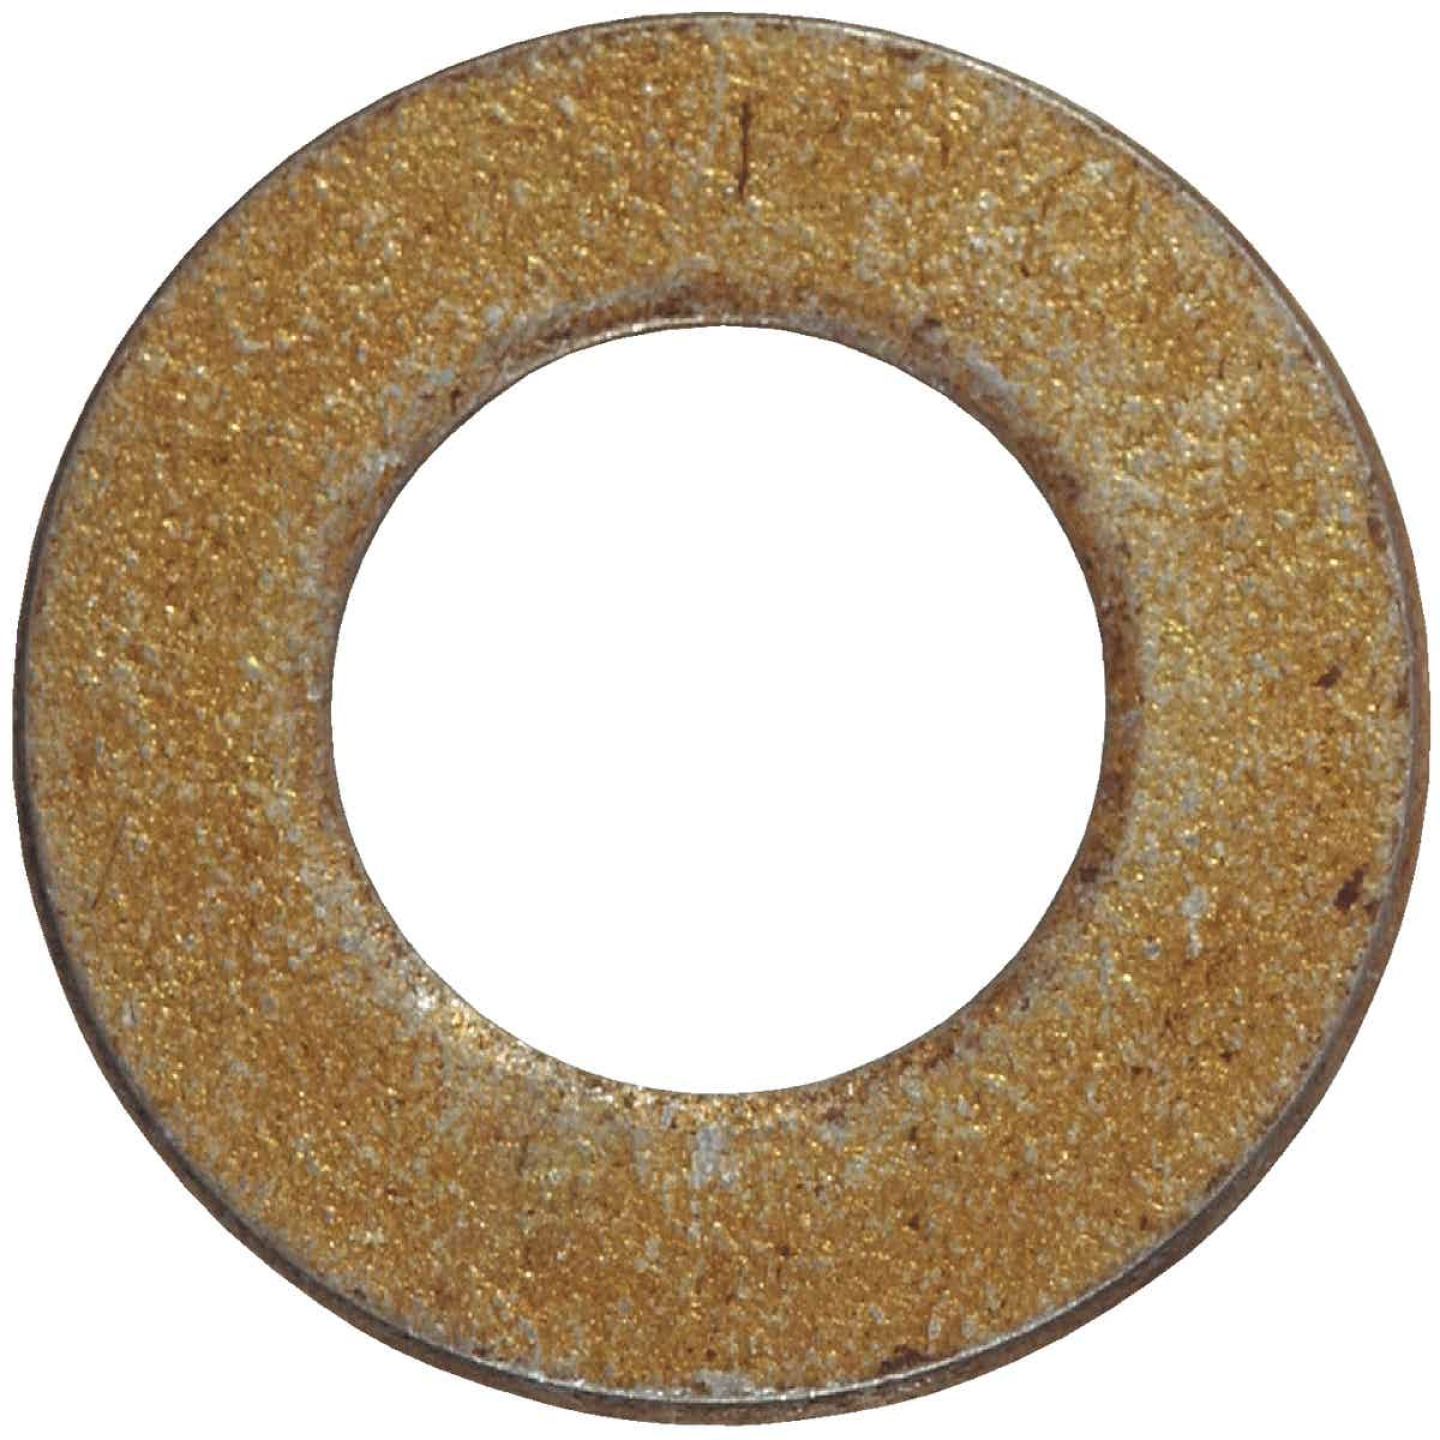 Hillman 3/8 In. SAE Hardened Steel Yellow Dichromate Flat Washer (100 Ct.) Image 1